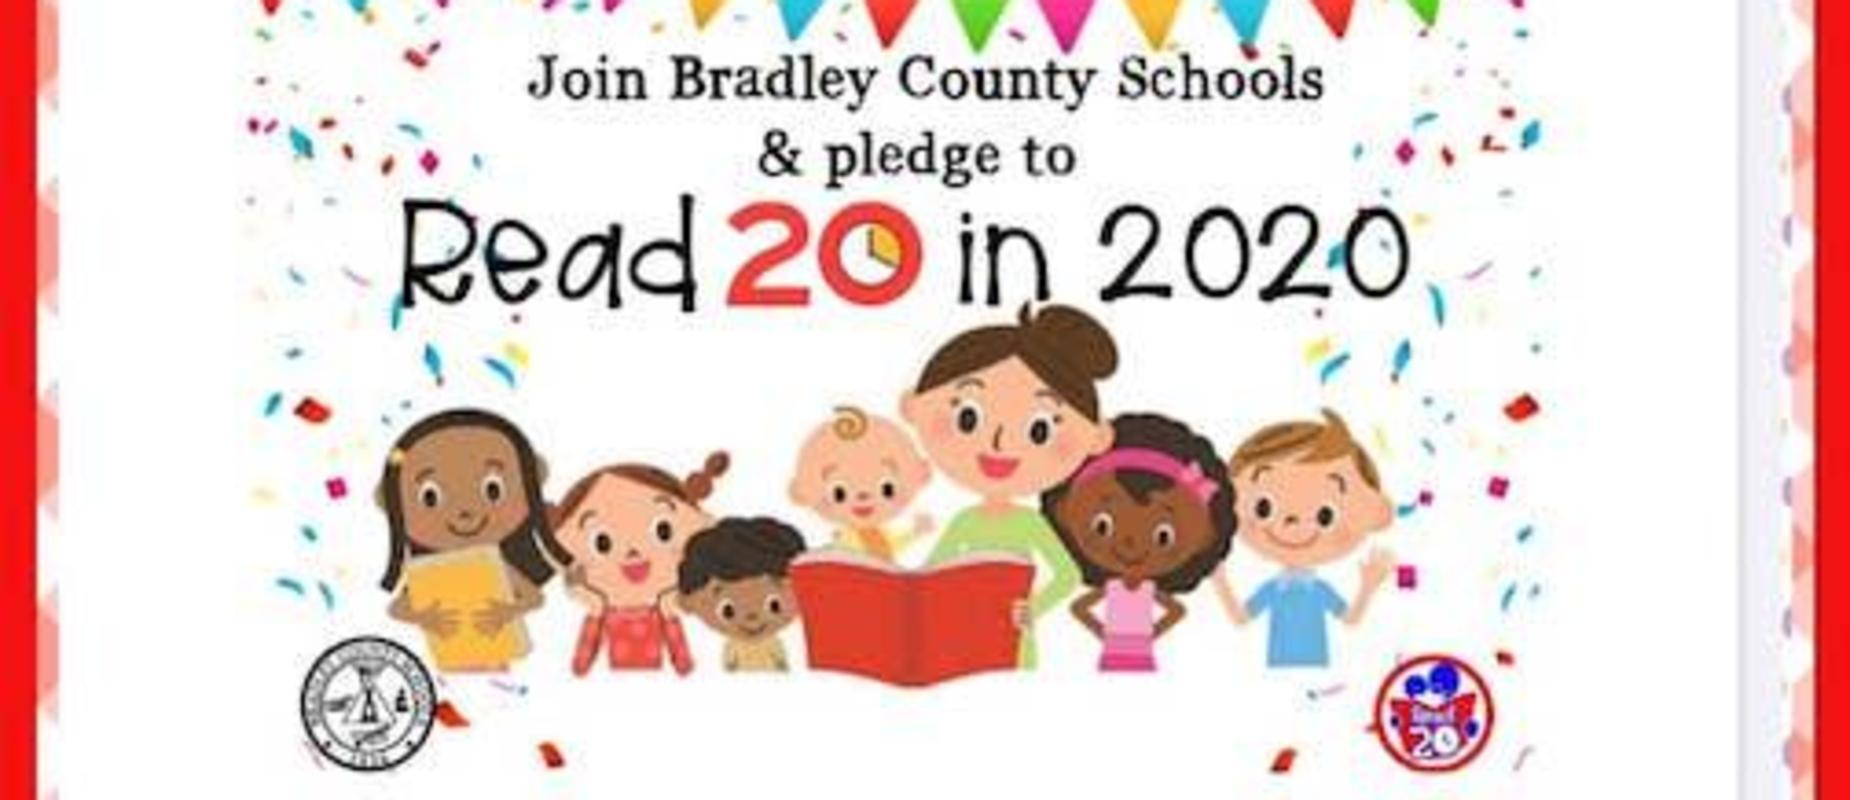 Link to Reading 20 books in 2020